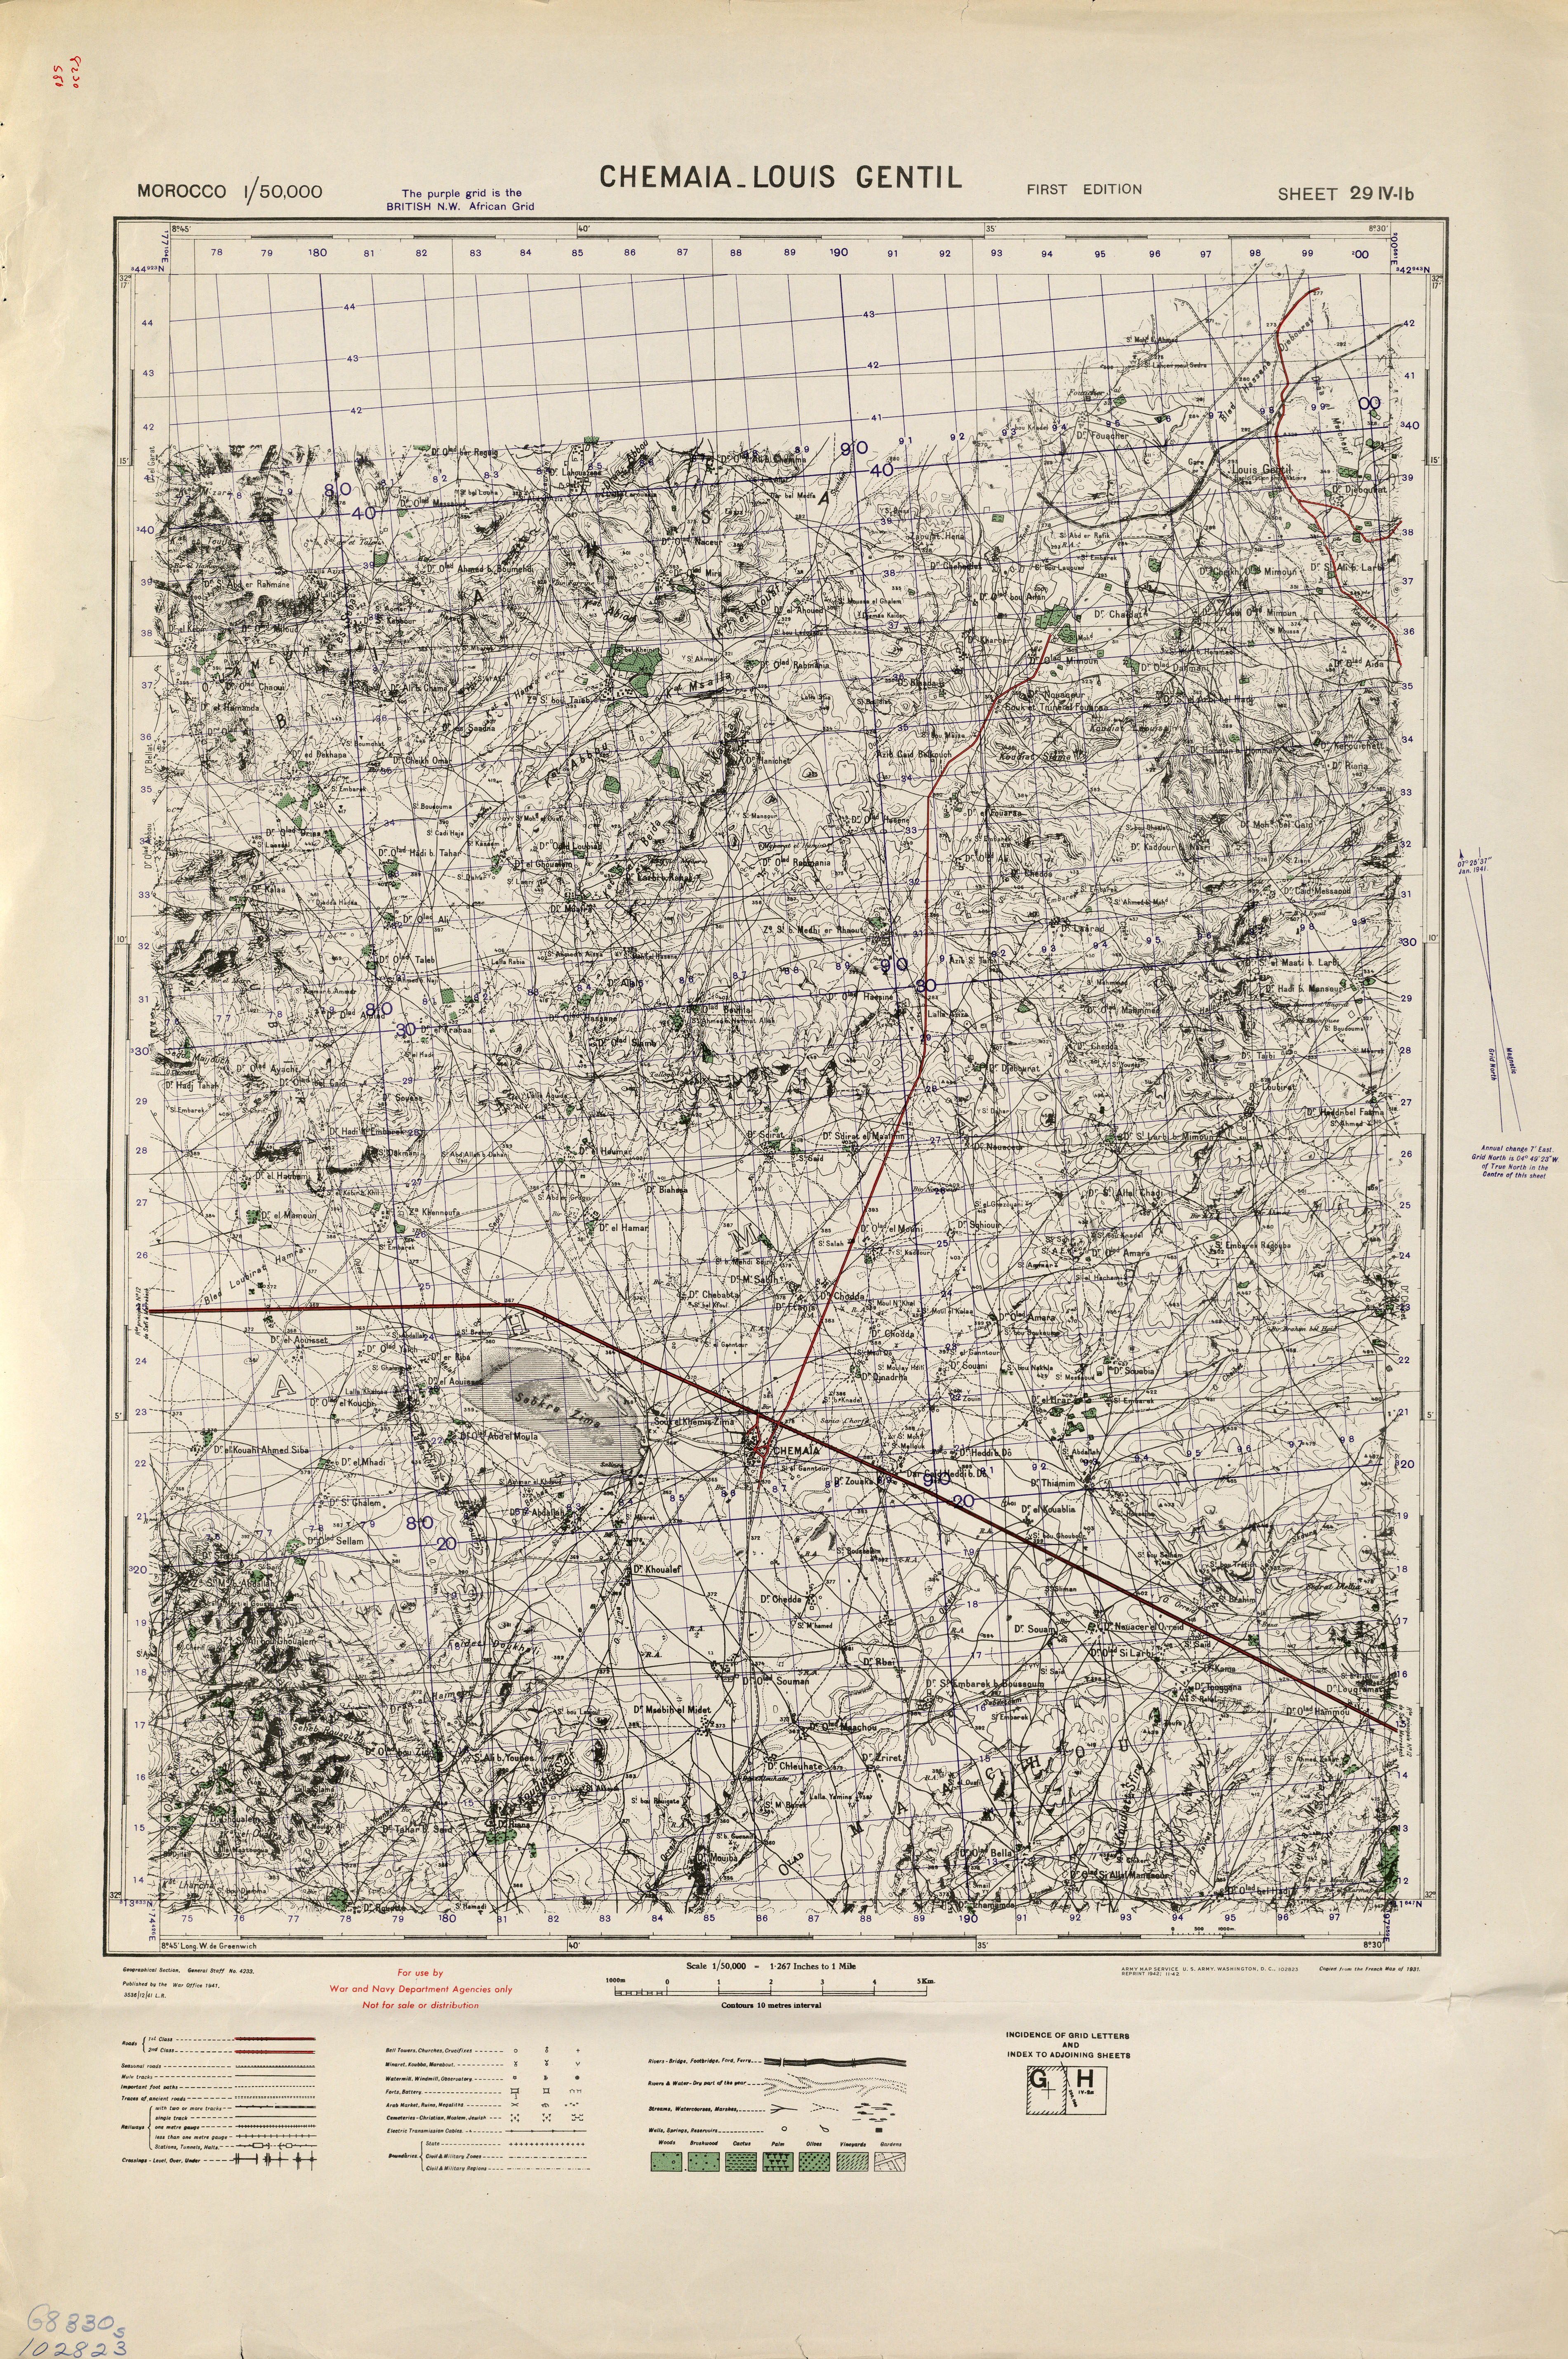 Chemaia Louis Gentil Morocco 50000 (50k) Topographic map free download